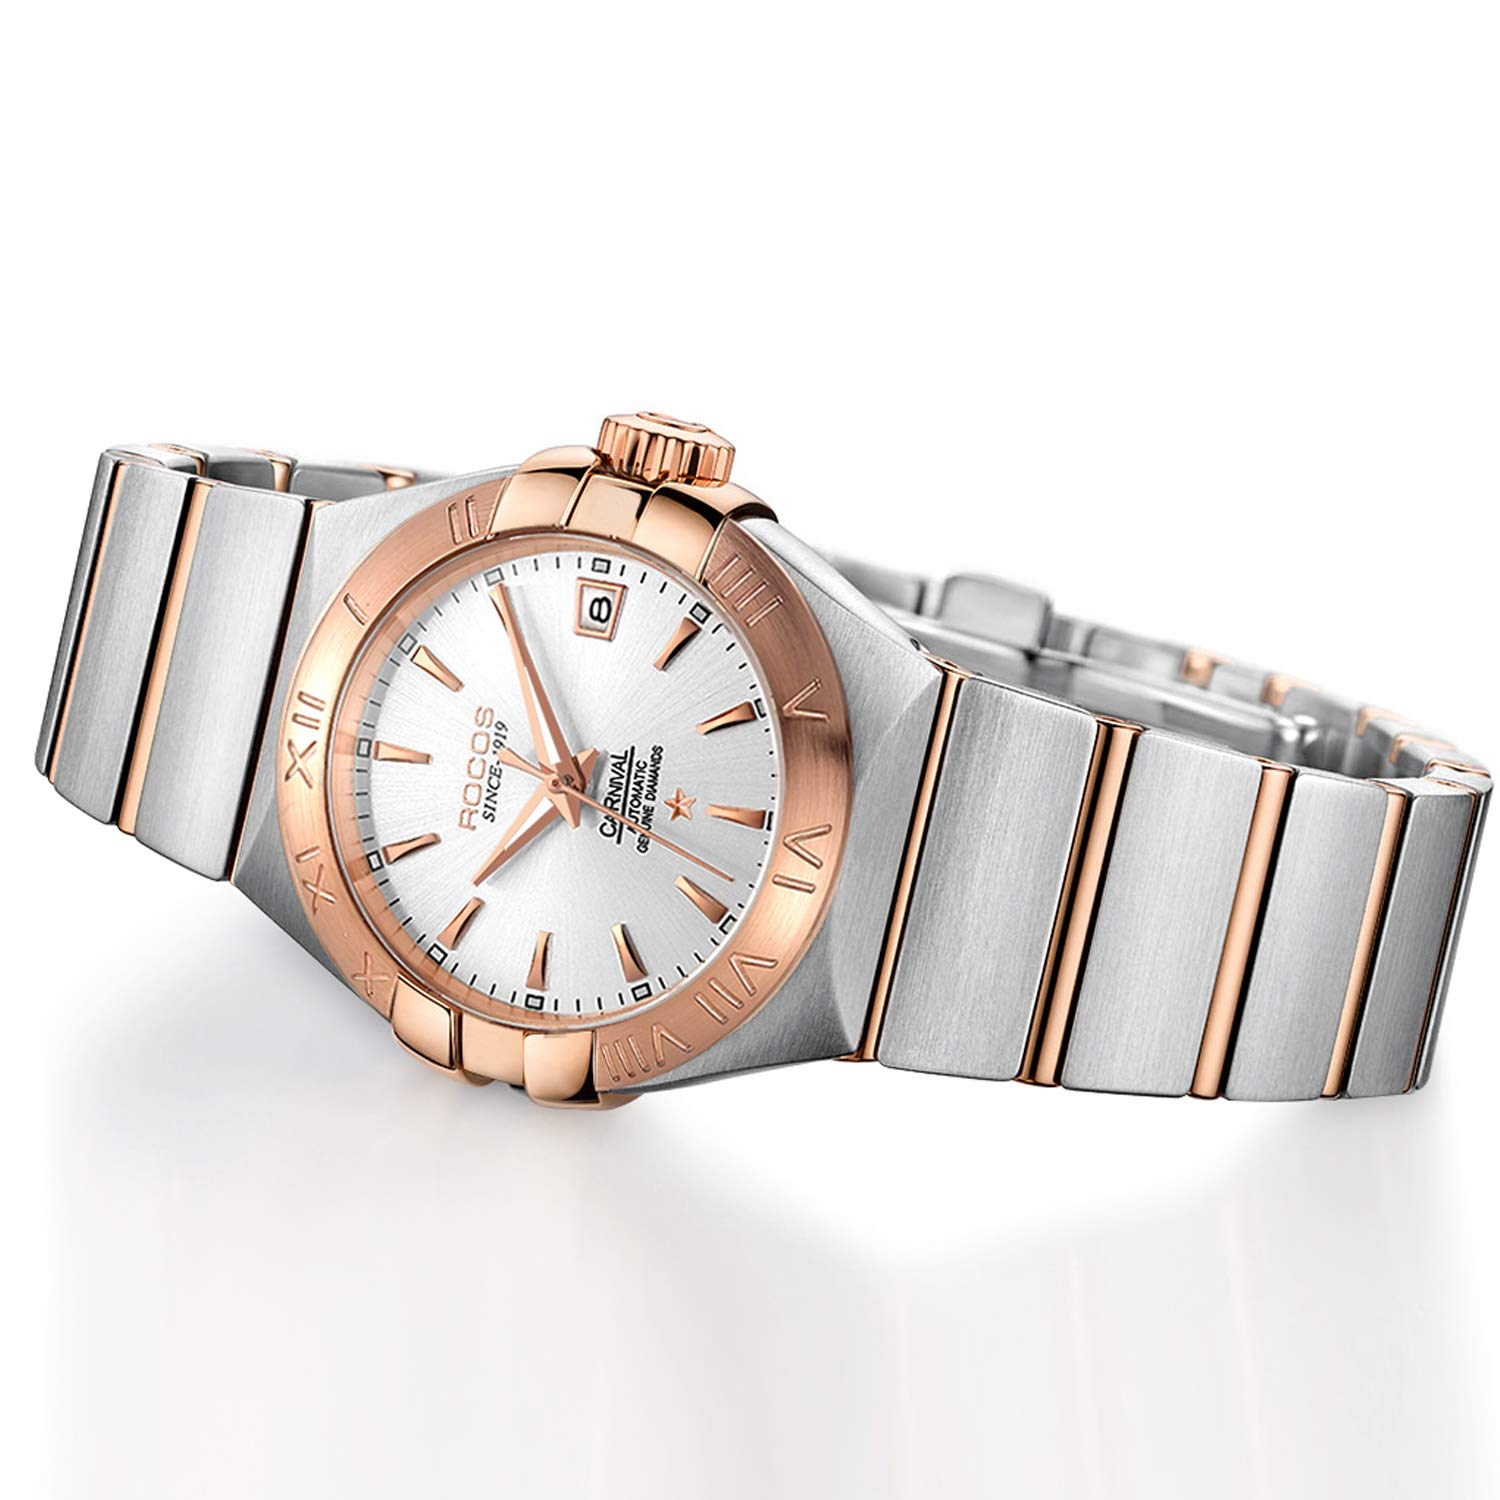 Women s Automatic Wrist Watch ROCOS Rose Gold Dress Watch with Stainless Steel and White Dial Ladies Crystal Analog Watches Luxury Classic Elegant Gift R1101L